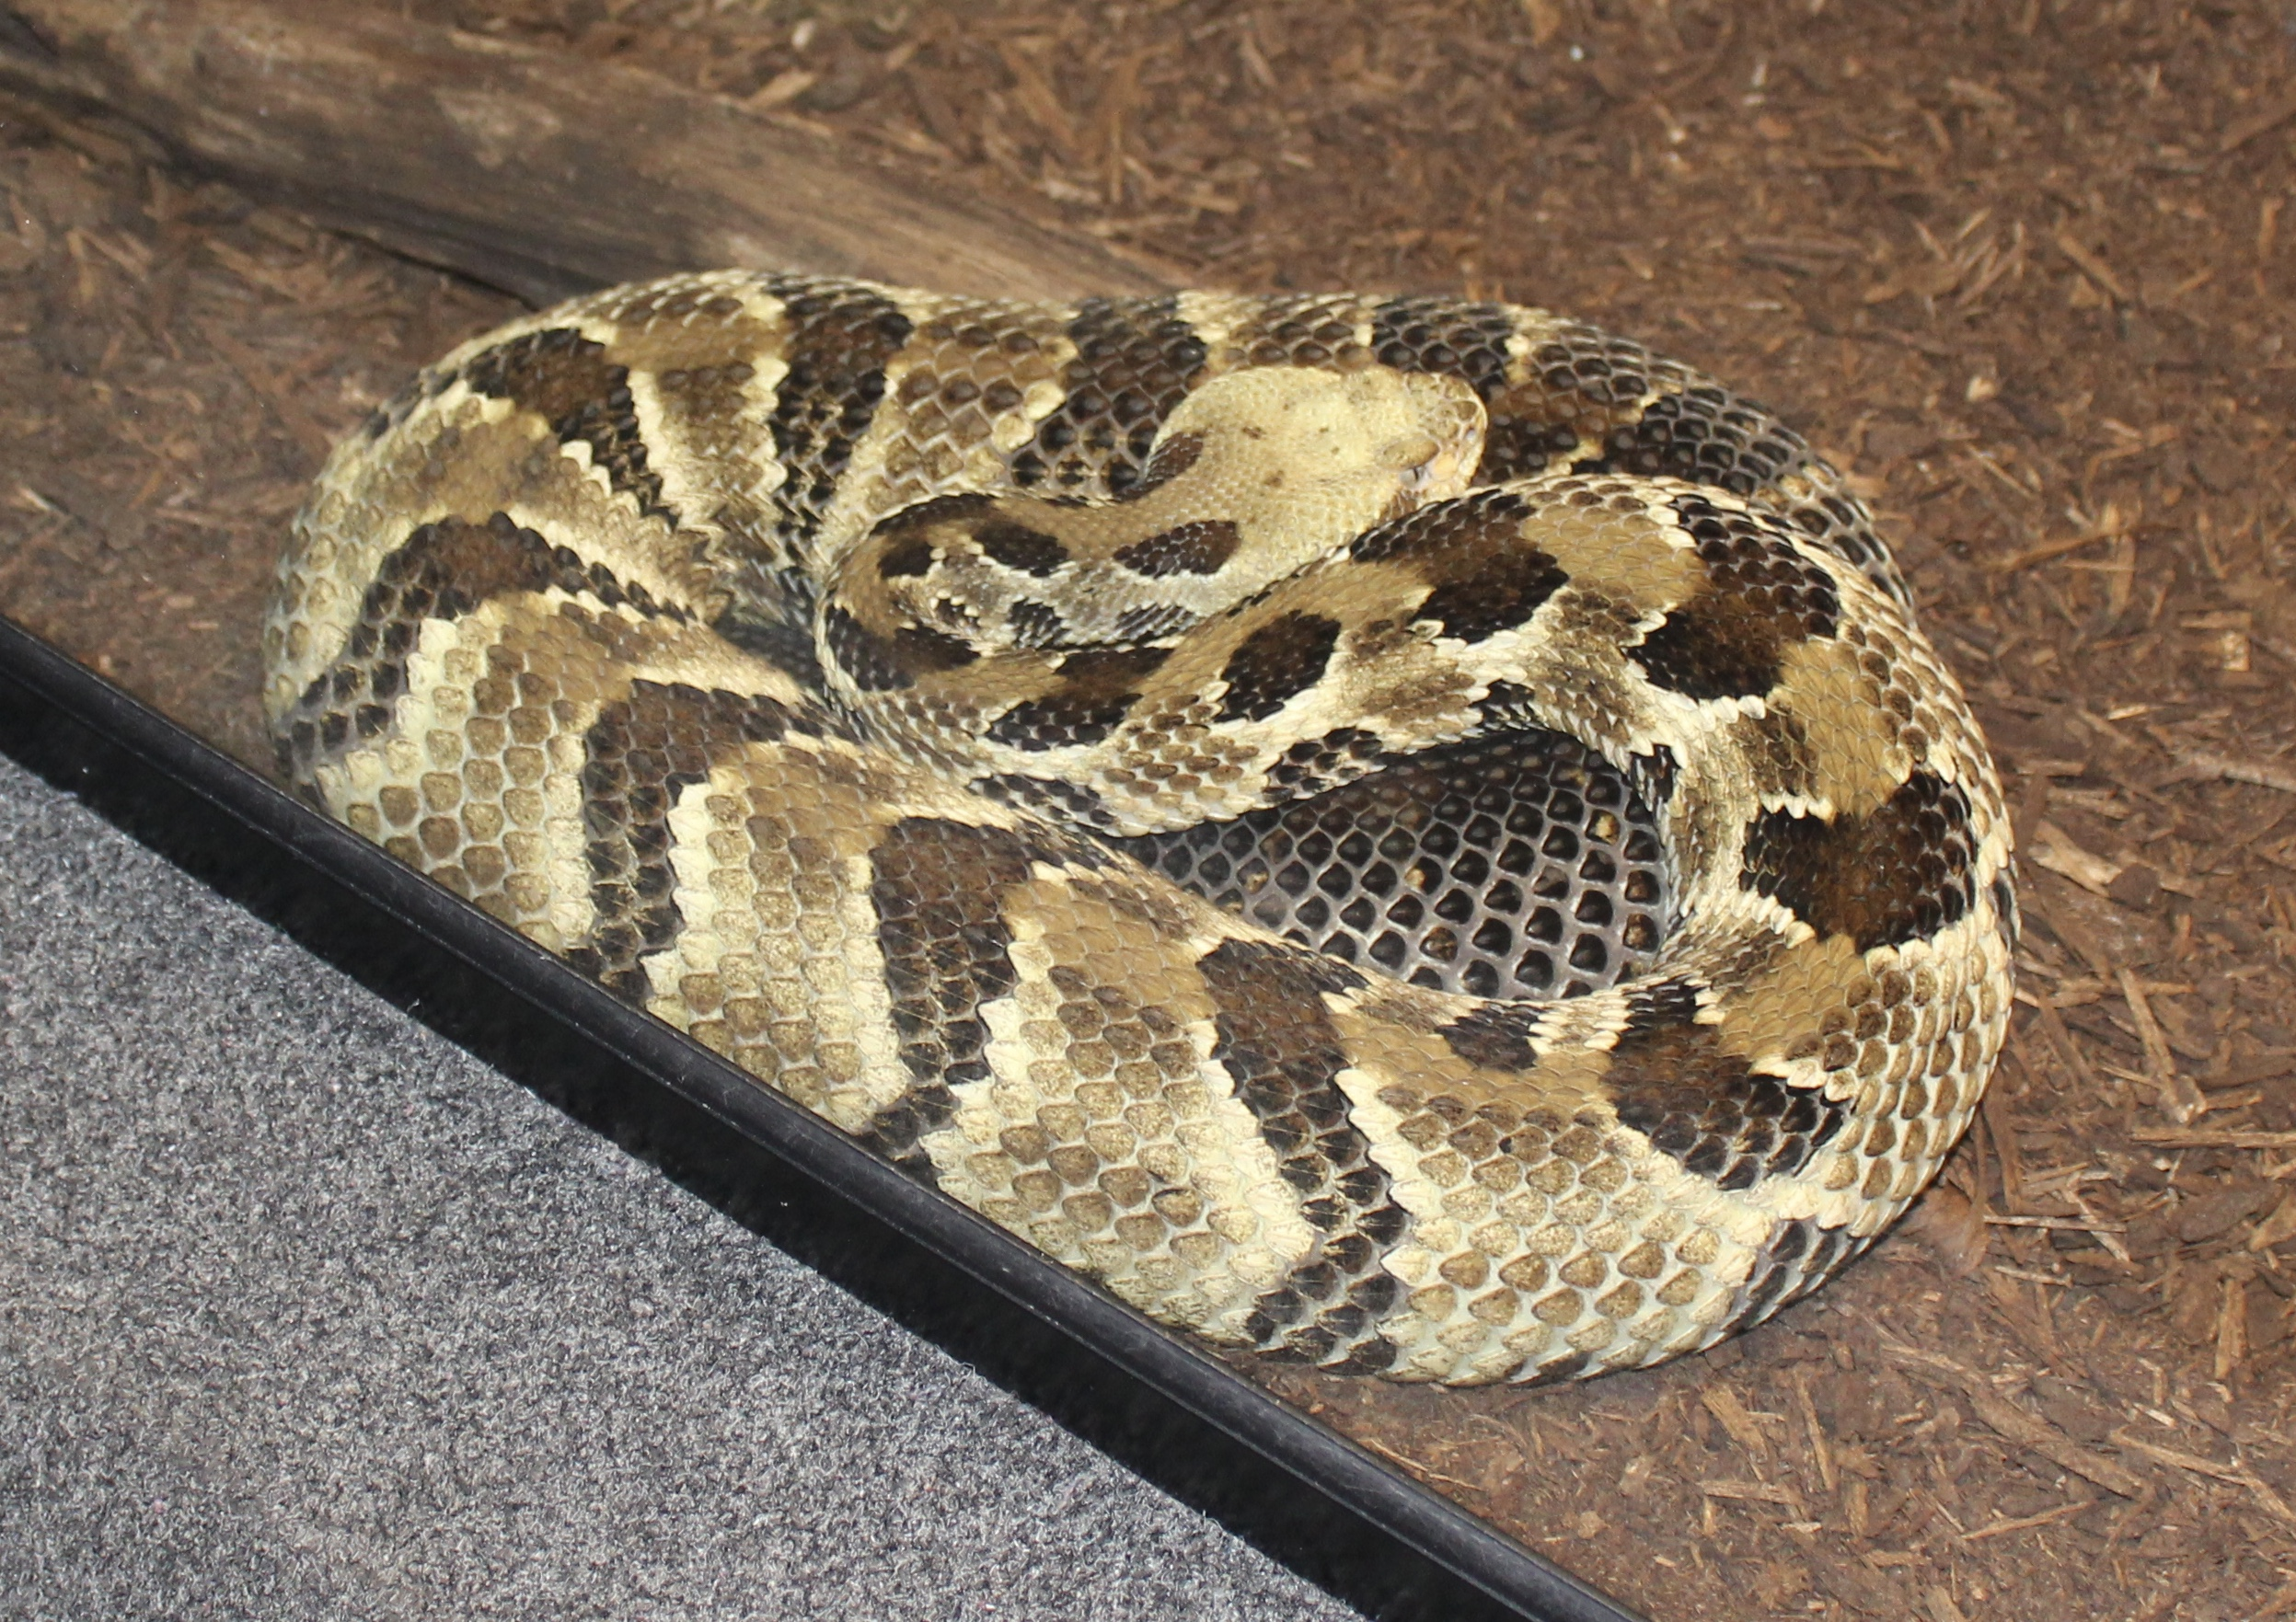 Curled Up Snake